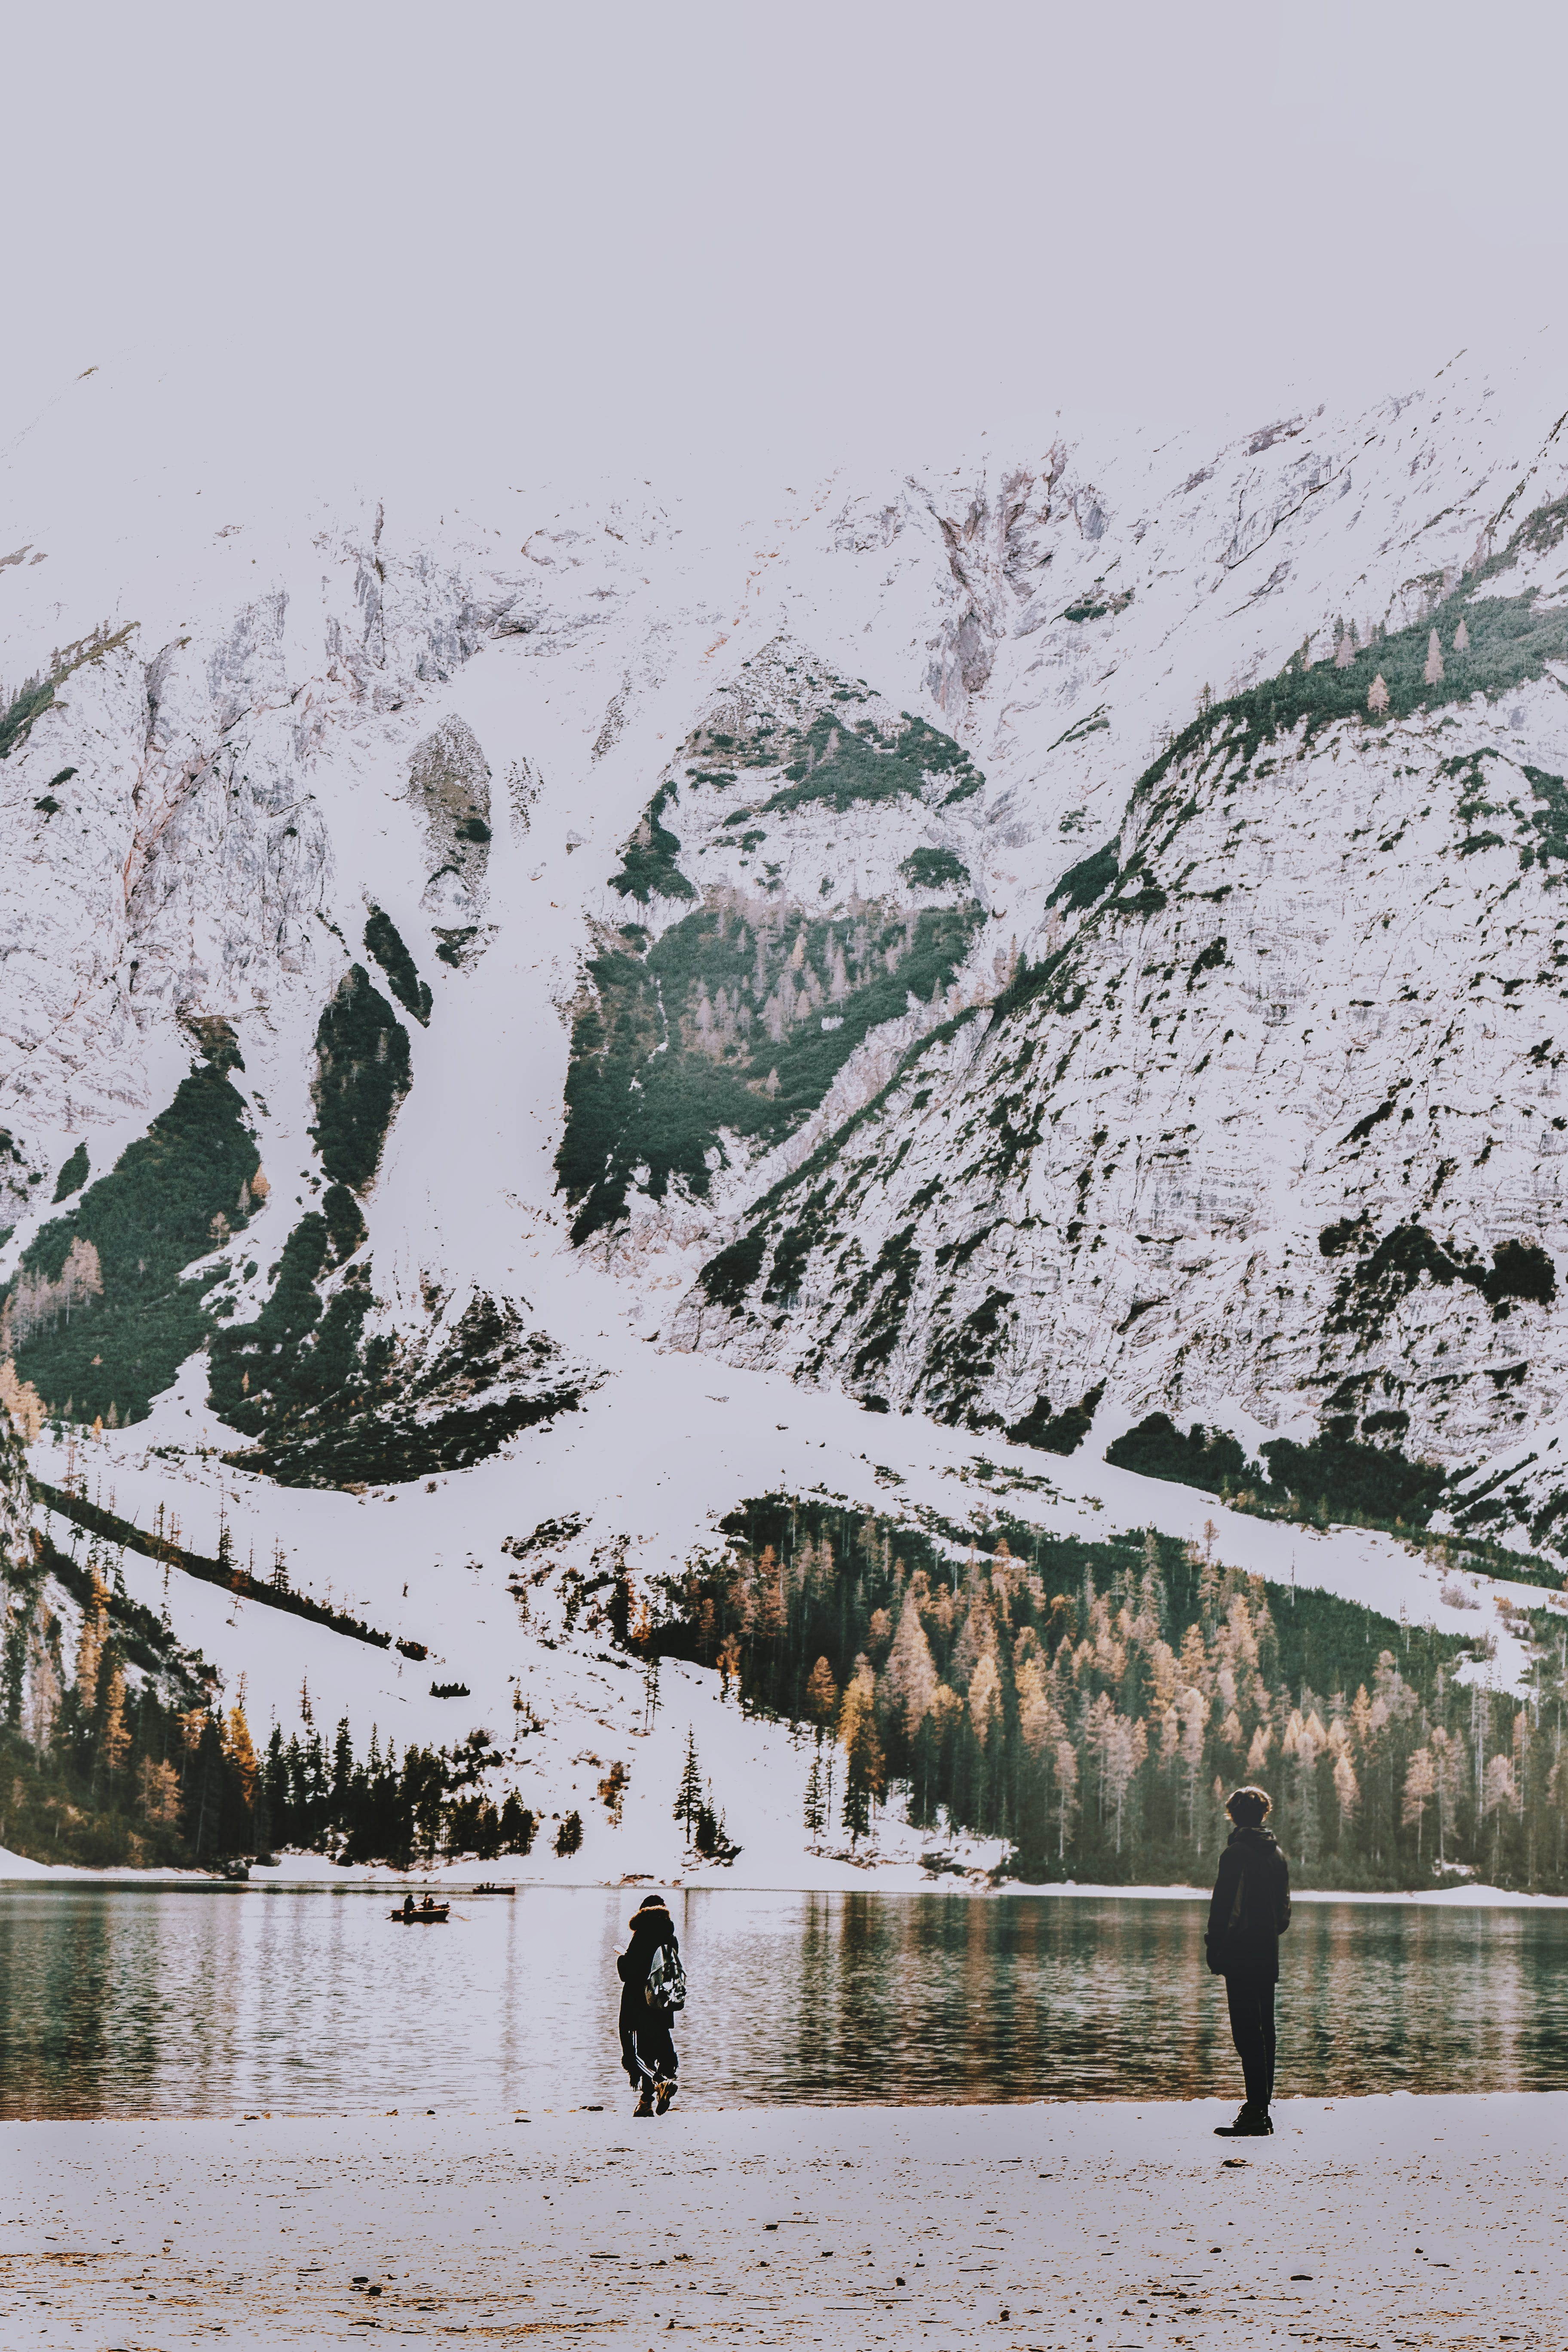 Two People Standing on Shore Overlooking Body of Water and Snow Covered Mountain